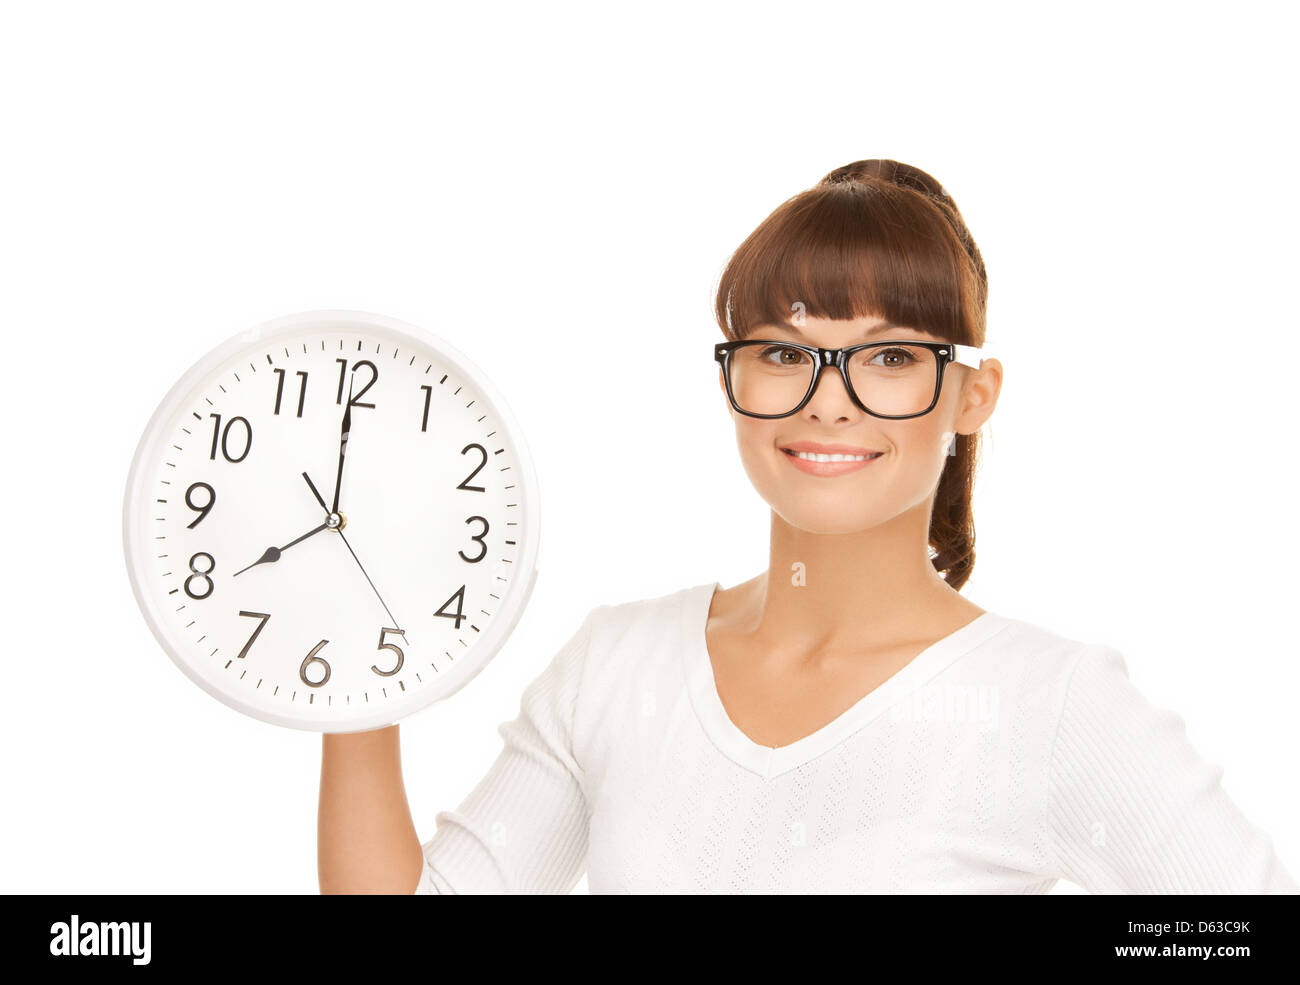 businesswoman with wall clock - Stock Image